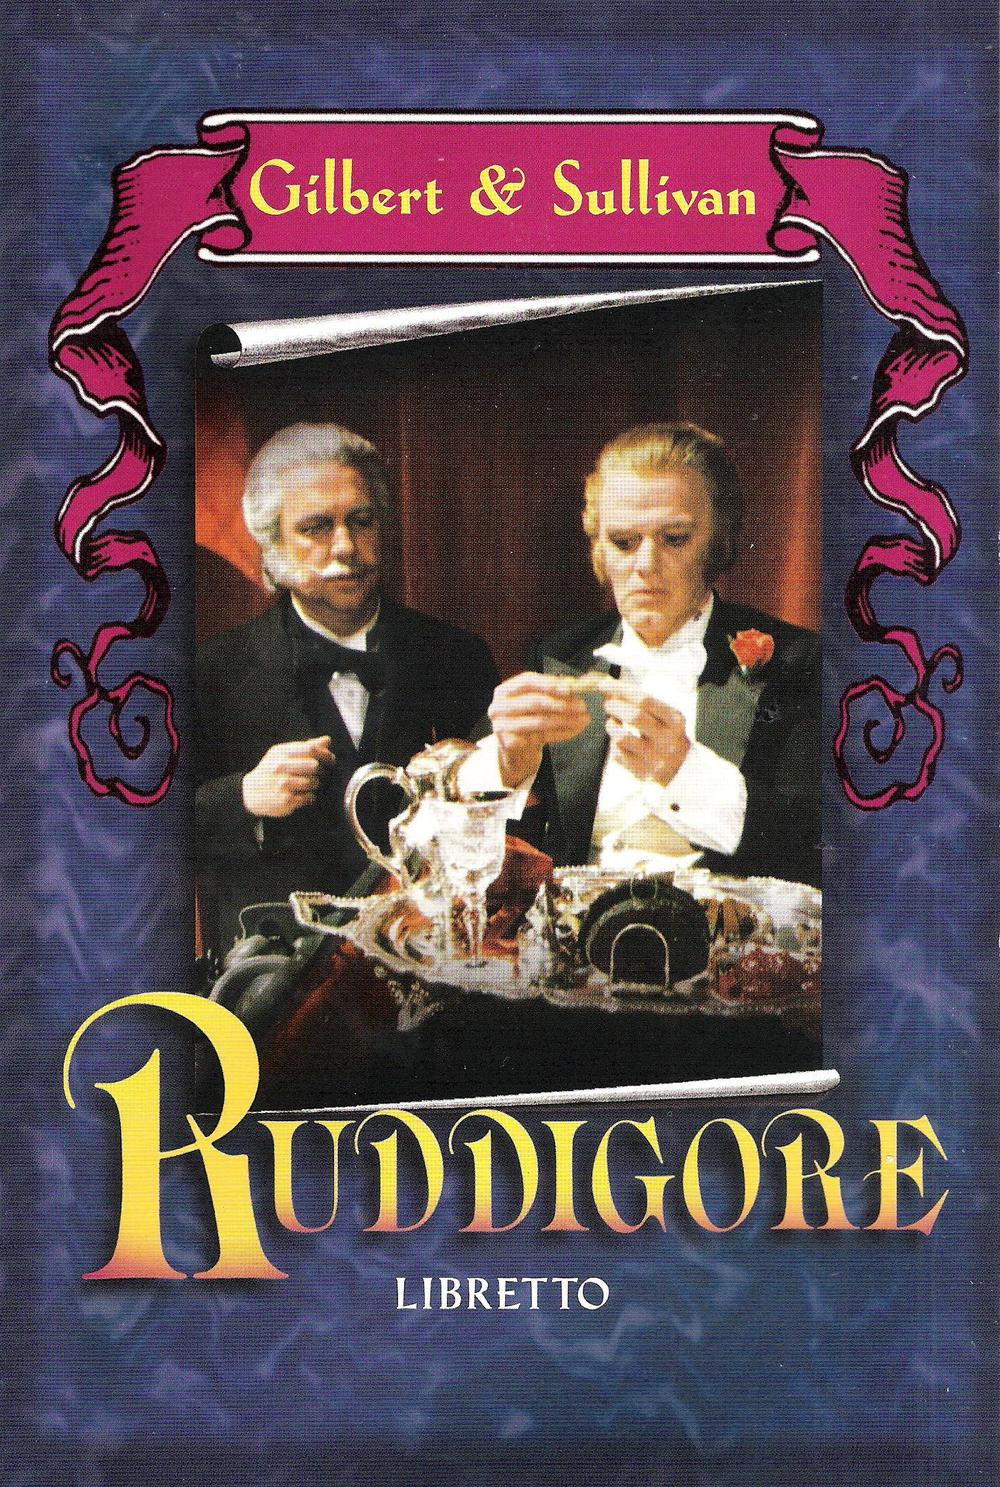 BBC television production of Ruddigore from mid 1980s (libretto cover)